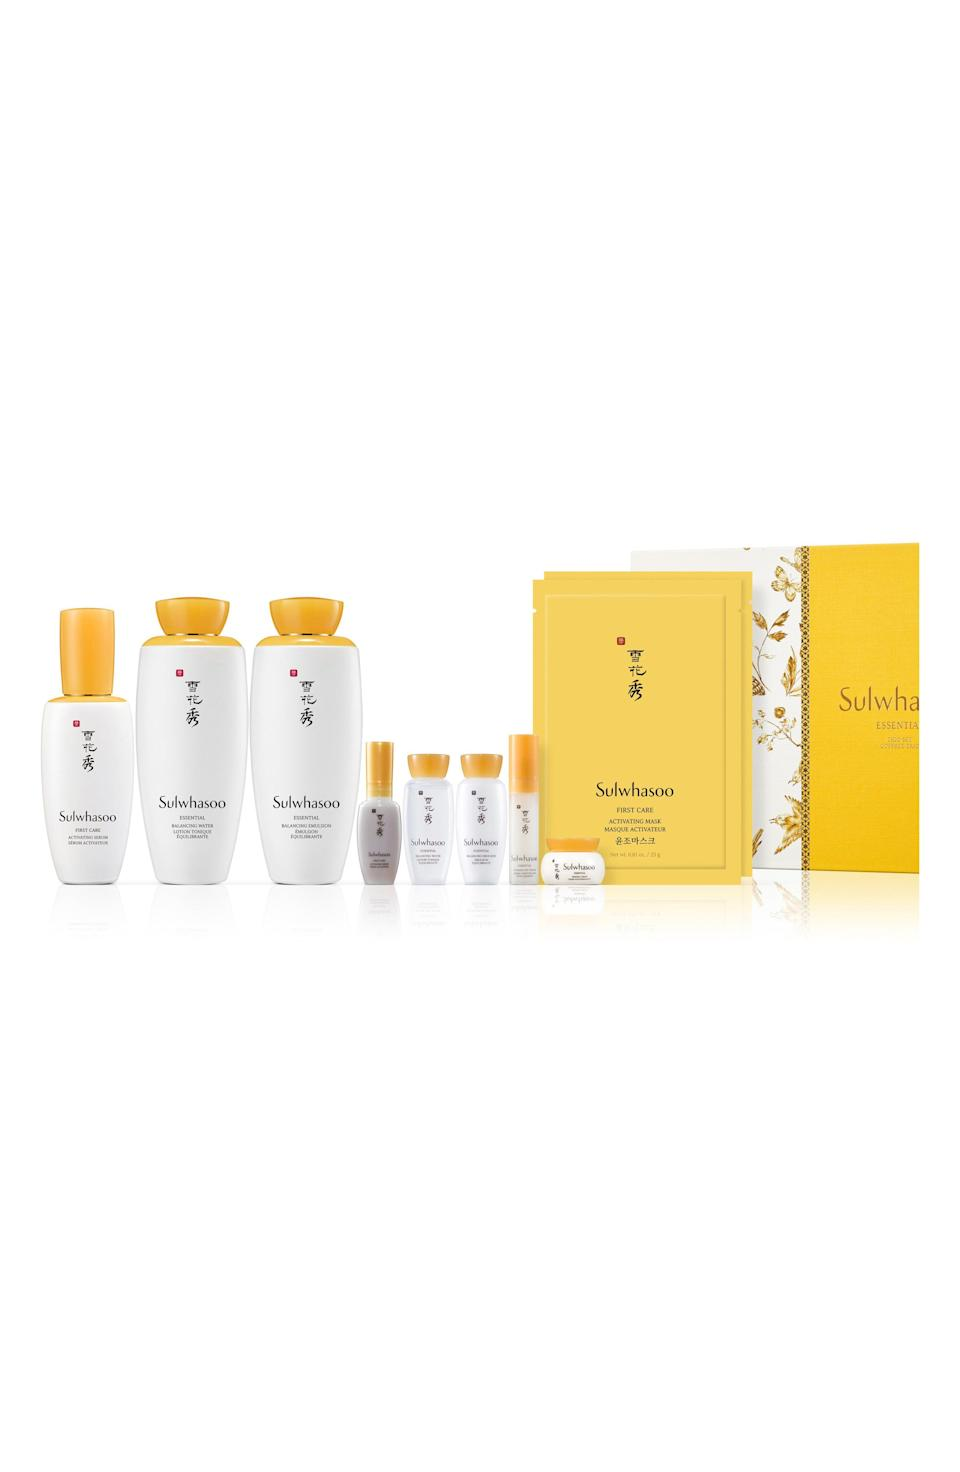 """<p><strong>Sulwhasoo</strong></p><p>nordstrom.com</p><p><strong>$205.00</strong></p><p><a href=""""https://go.redirectingat.com?id=74968X1596630&url=https%3A%2F%2Fwww.nordstrom.com%2Fs%2Fsulwhasoo-essential-care-collection-nordstrom-exclusive-usd-275-value%2F5583524&sref=https%3A%2F%2Fwww.harpersbazaar.com%2Fbeauty%2Fg33481900%2Fnordstrom-anniversary-sale-2020-best-beauty-makeup-deals%2F"""" rel=""""nofollow noopener"""" target=""""_blank"""" data-ylk=""""slk:SHOP NOW"""" class=""""link rapid-noclick-resp"""">SHOP NOW</a></p><p><strong>Sale: $205</strong> </p><p>Value: $263 </p><p>Famous for drawing on the holistic powers of Korean herbal medicine, Sulwahsoo became Korea's first beauty brand to ever break an <a href=""""https://wwd.com/business-news/retail/sulwhasoo-opens-6-story-flagship-on-seoul-10399999/"""" rel=""""nofollow noopener"""" target=""""_blank"""" data-ylk=""""slk:annual sales milestone of 1 trillion won"""" class=""""link rapid-noclick-resp"""">annual sales milestone of 1 trillion won</a> back in 2015. If the K-pop brand is still new to you though, this skincare collection will intro you to some of their most-hyped products (all of which are more focused on soothing than resurfacing). This includes: Sulwahoo's ginseng-infused activating serum, balancing water, balancing emulsion, firming cream, eye cream as well as two sheet masks.</p>"""